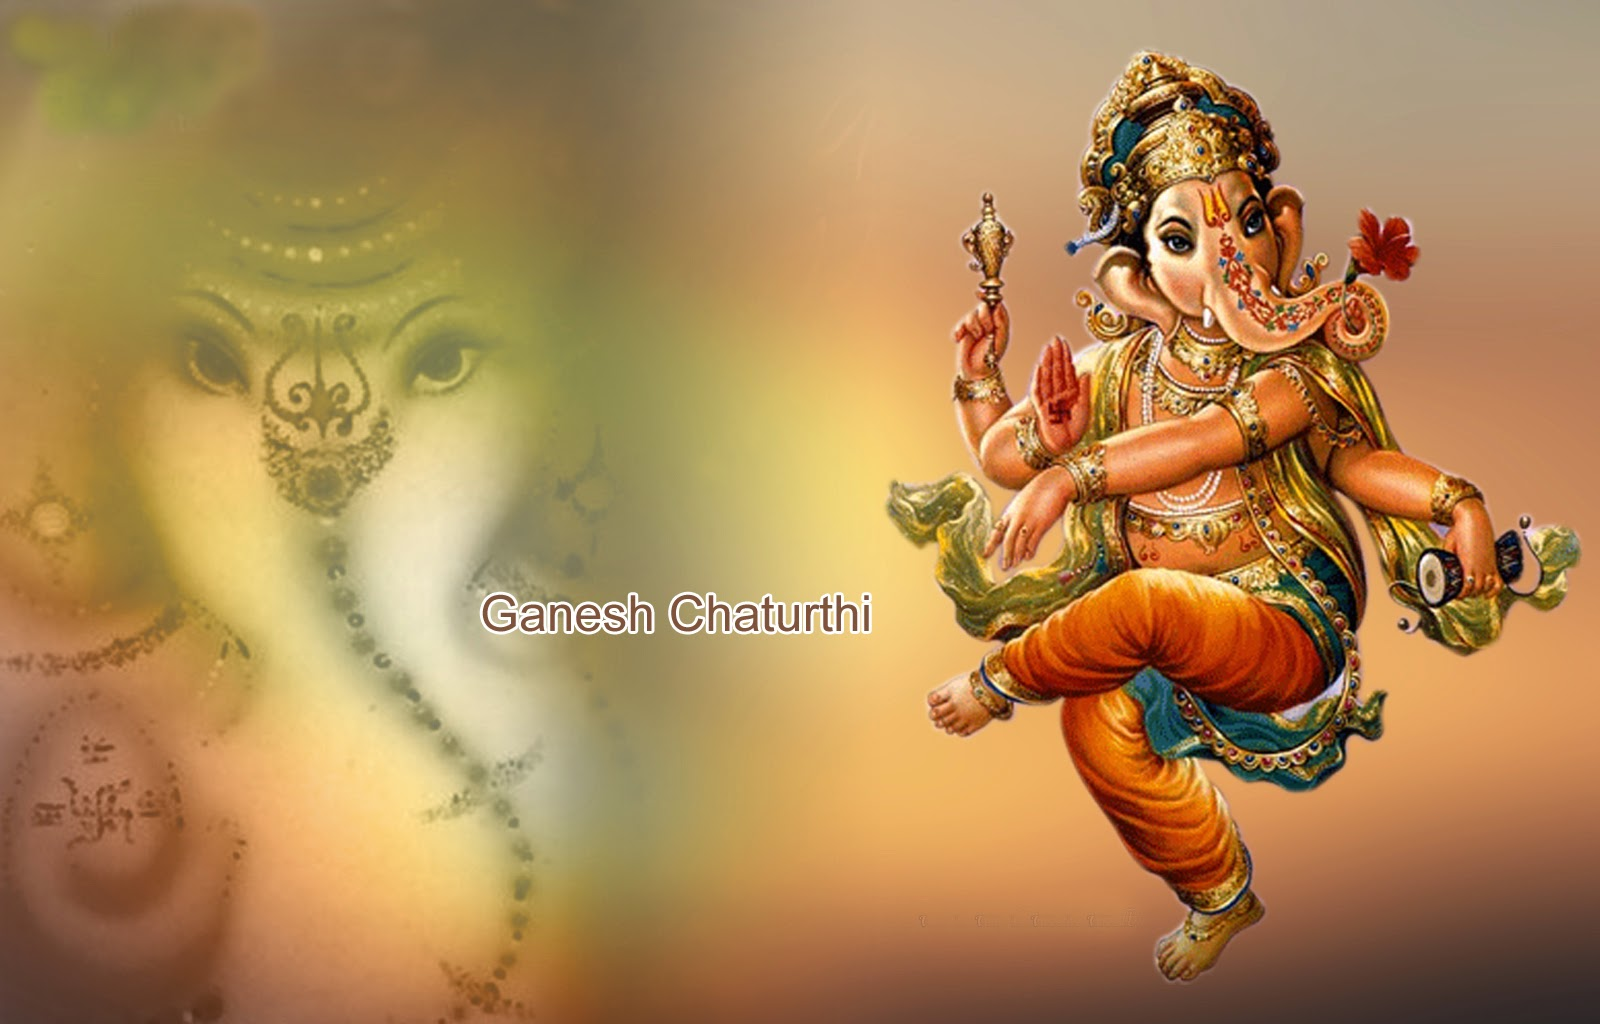 Ganesh Chaturthi Greetings Images, Wishes Cards   Festival